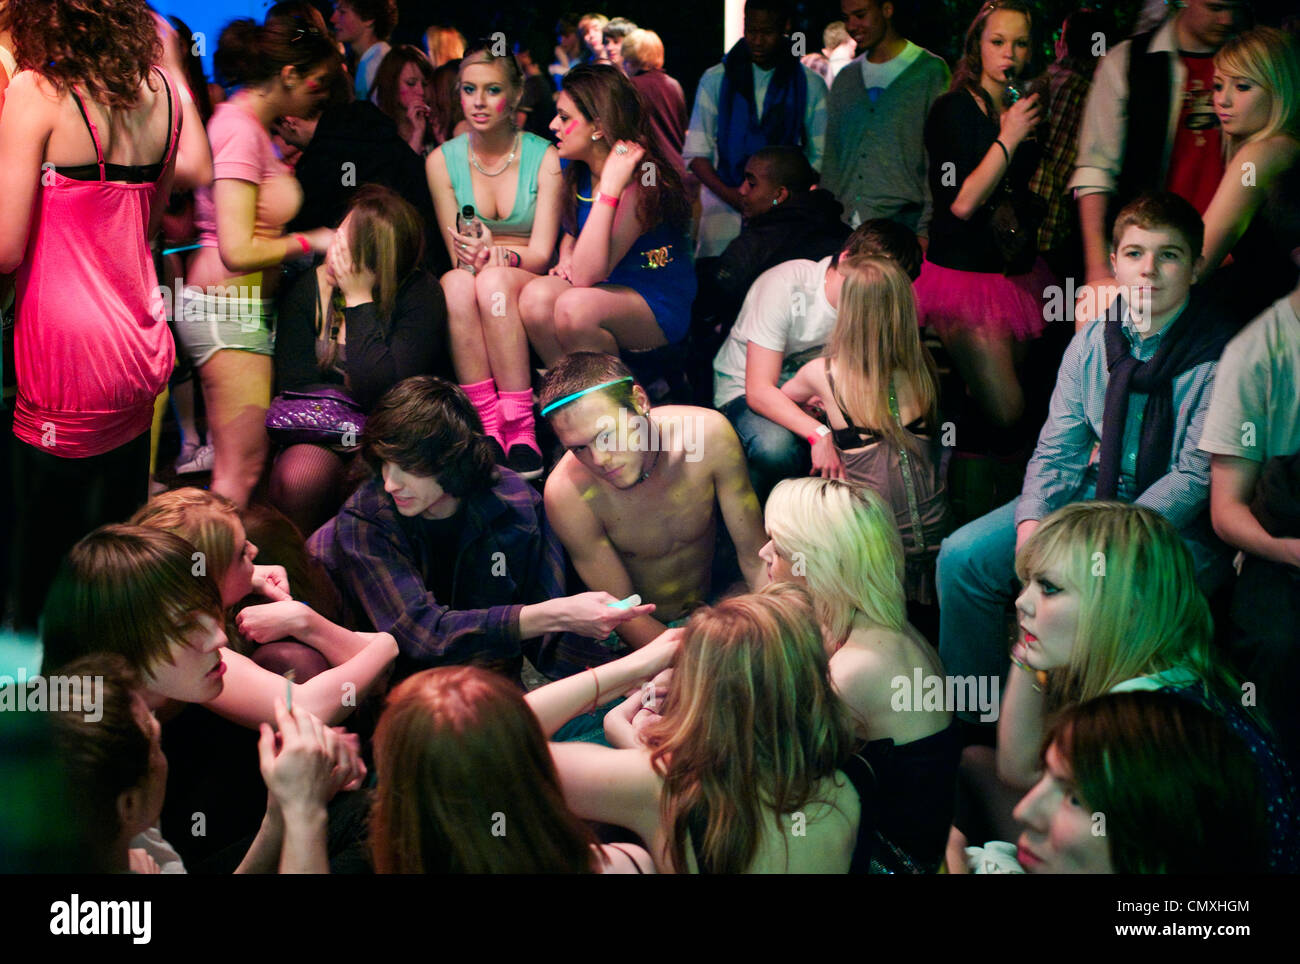 Adolescentes en Newquay, Cornwall partying. Imagen De Stock